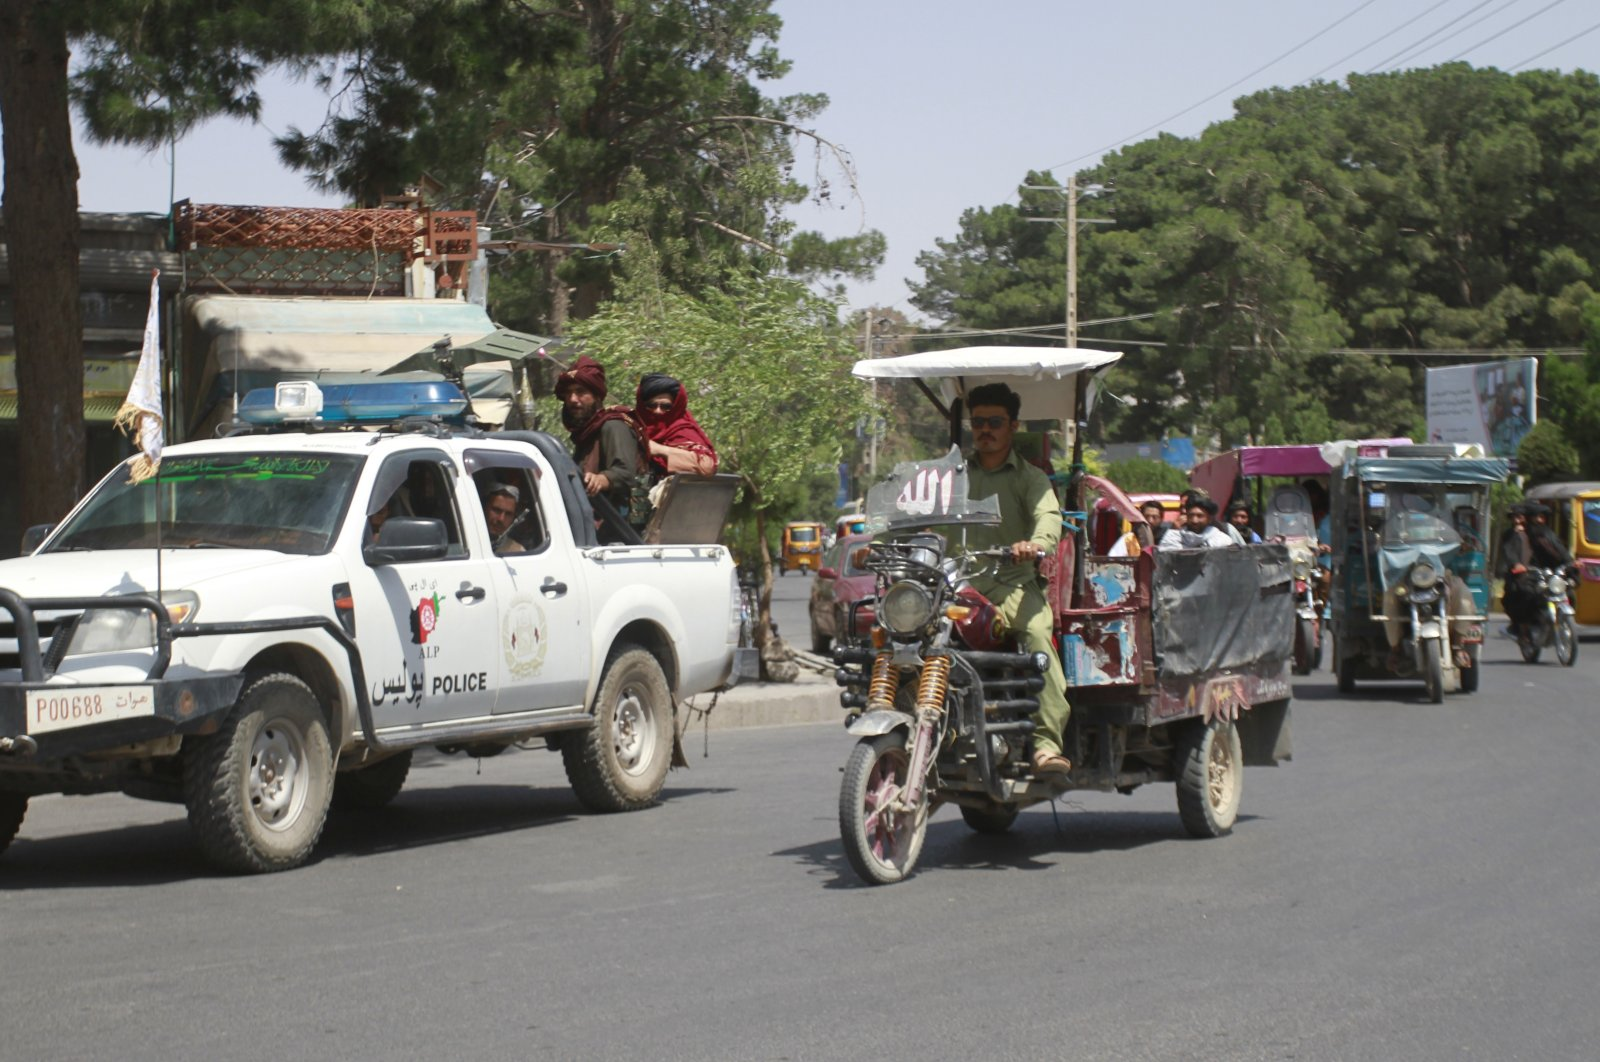 Members of the Taliban, left, drive with other motorists through city of Herat, Afghanistan, west of Kabul, Saturday, Aug. 14, 2021, after the province was taken from the Afghan government. (AP Photo)